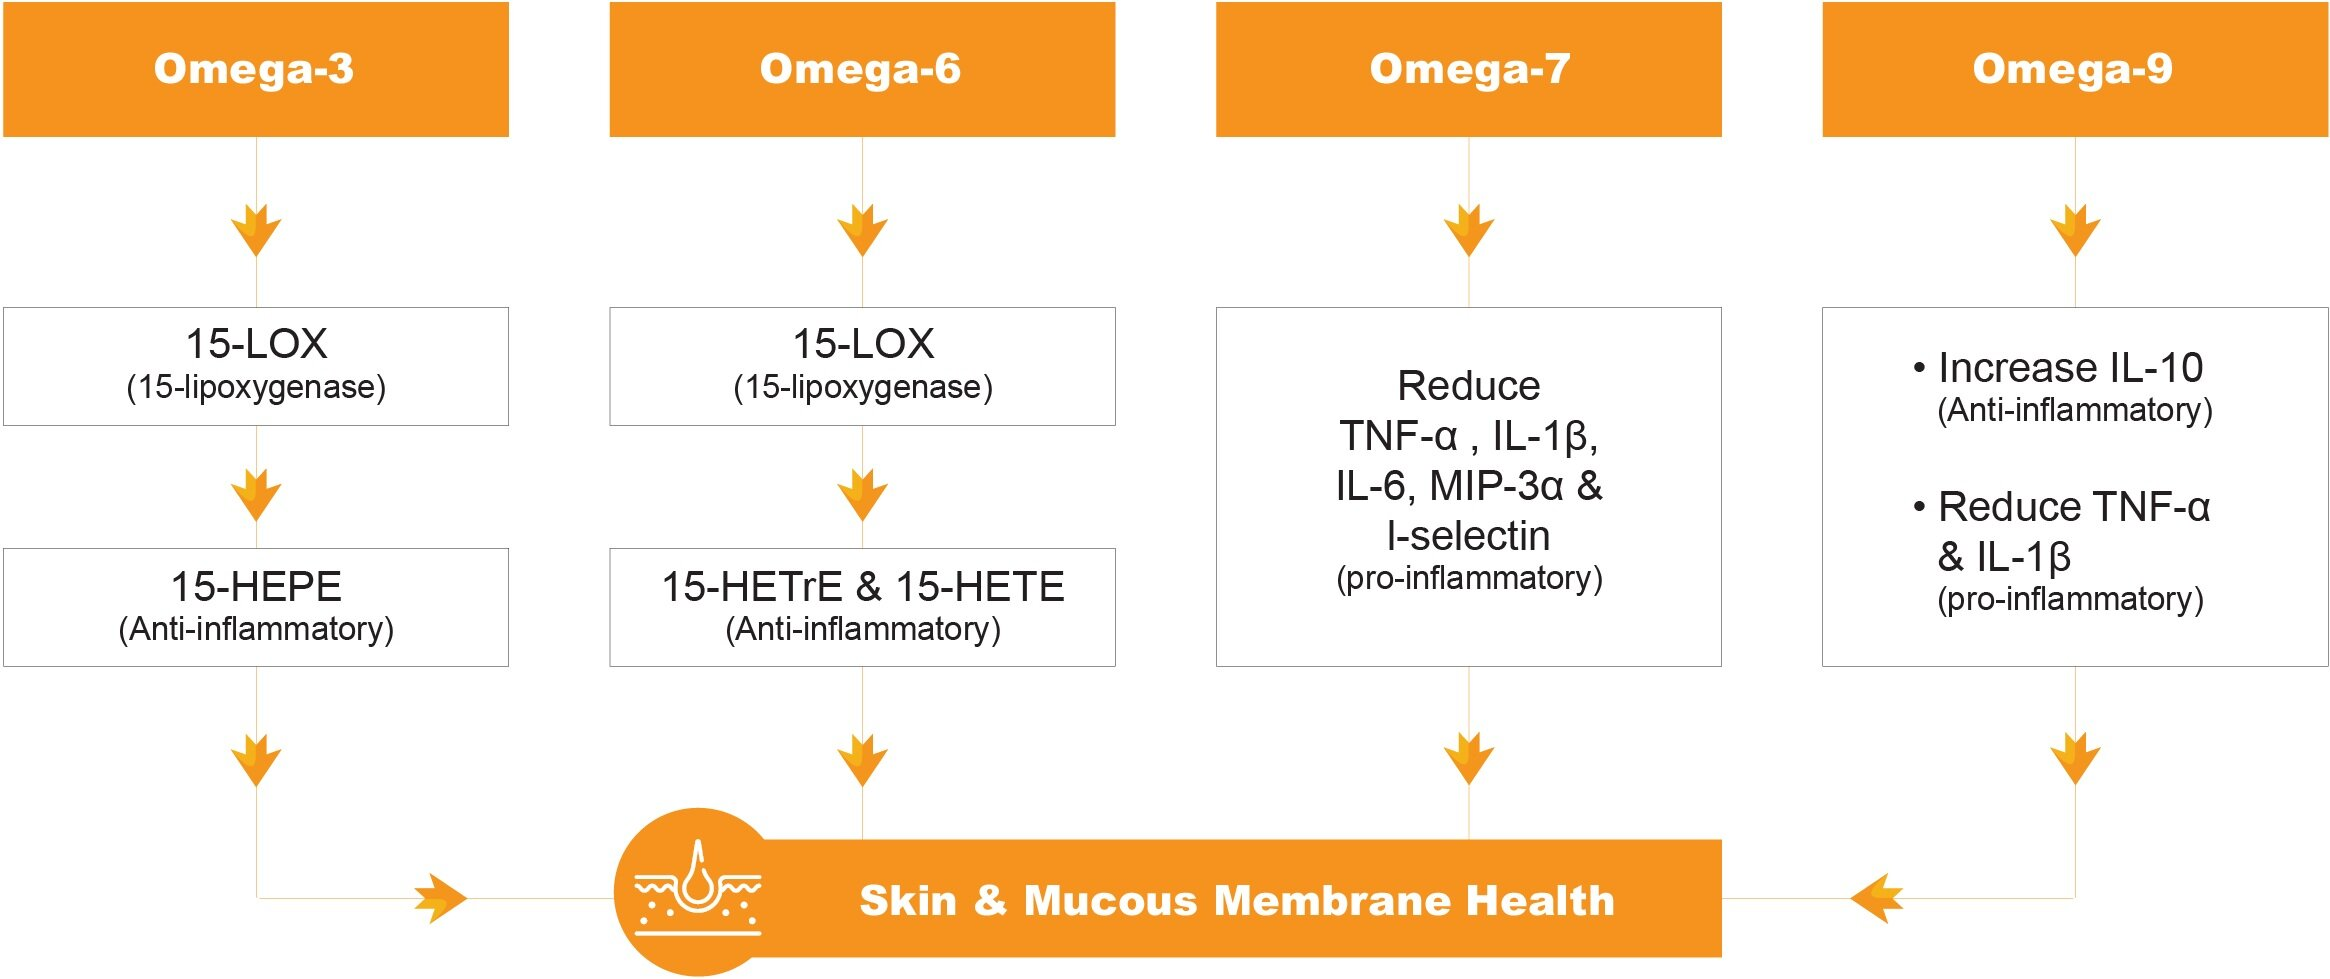 Omega® Organic Sea Buckthorn Omega Formula contributes to anti-inflammation by increasing anti-inflammatory cytokines (15-HEPE, 15-HETrE, 15-HETE, IL-10) and reducing proinflammatory cytokines (TNF-alpha, IL-1beta, IL-6, MIP-3alpha and I-selectin) production. Ultimately, they contribute to the regeneration of the mucous membrane.